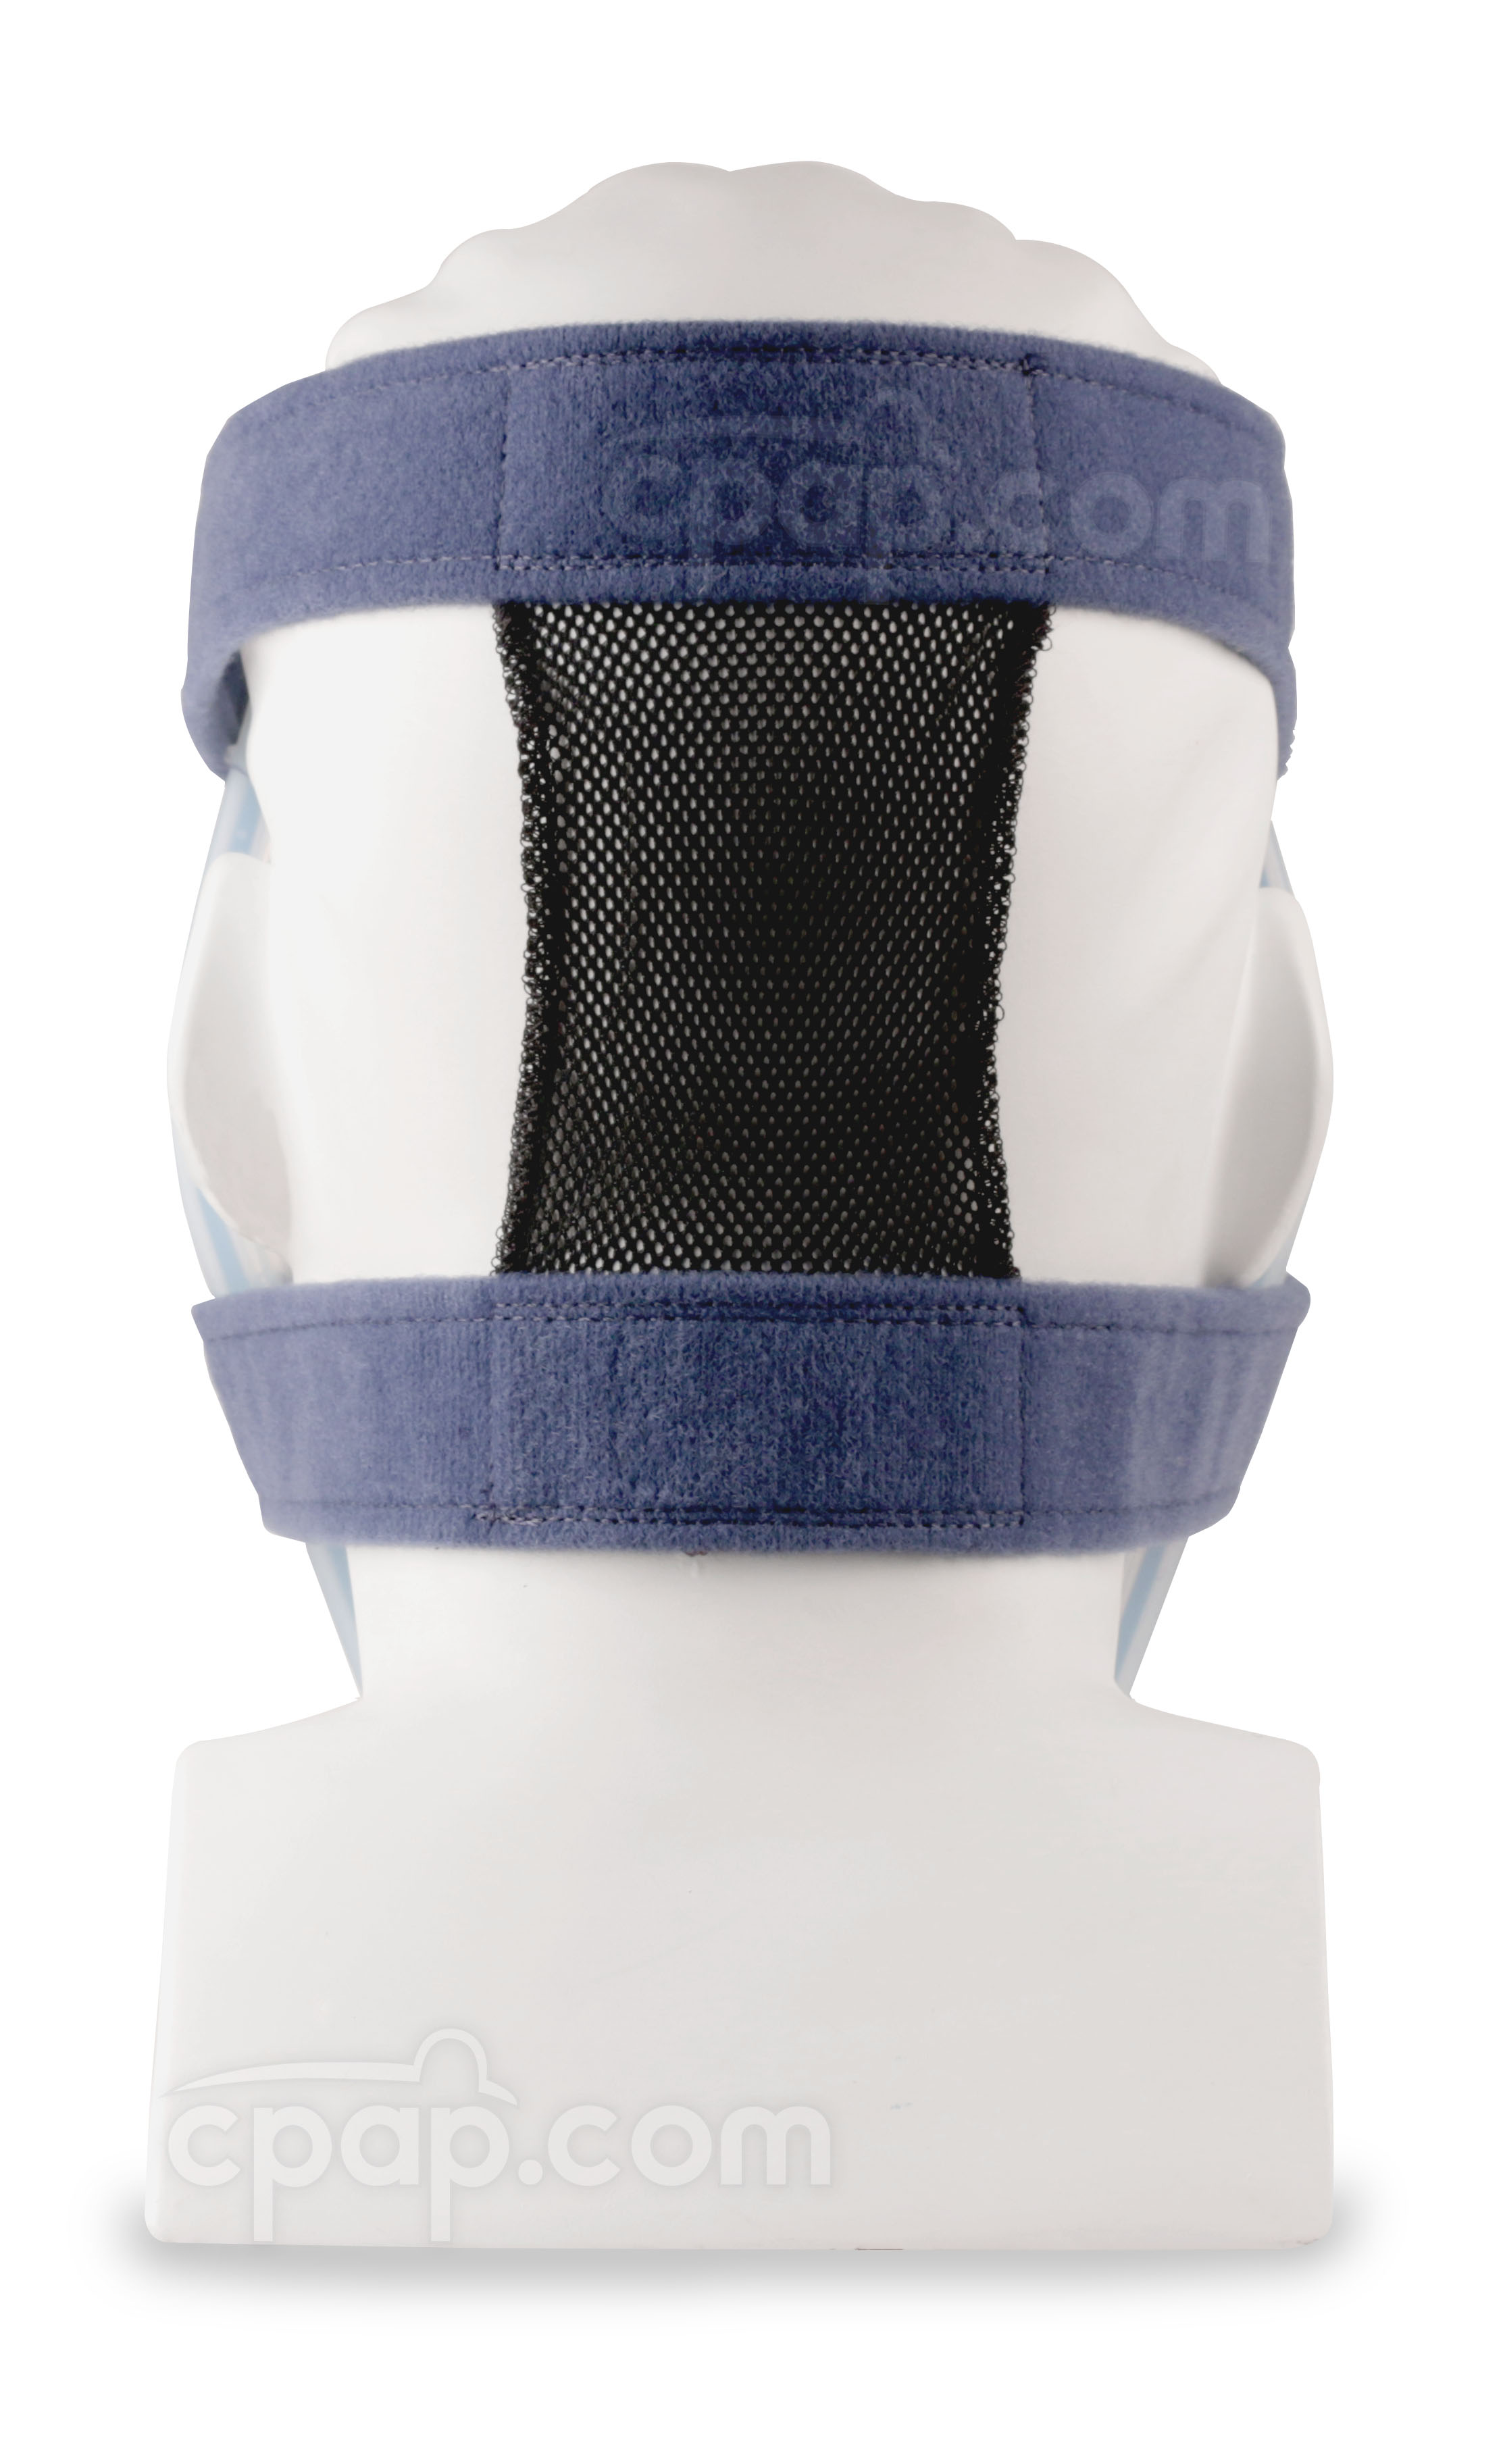 Back View of the Philips Respironics Total Face Mask Headgear (Shown with the Mask Attached - Mask Not Included)